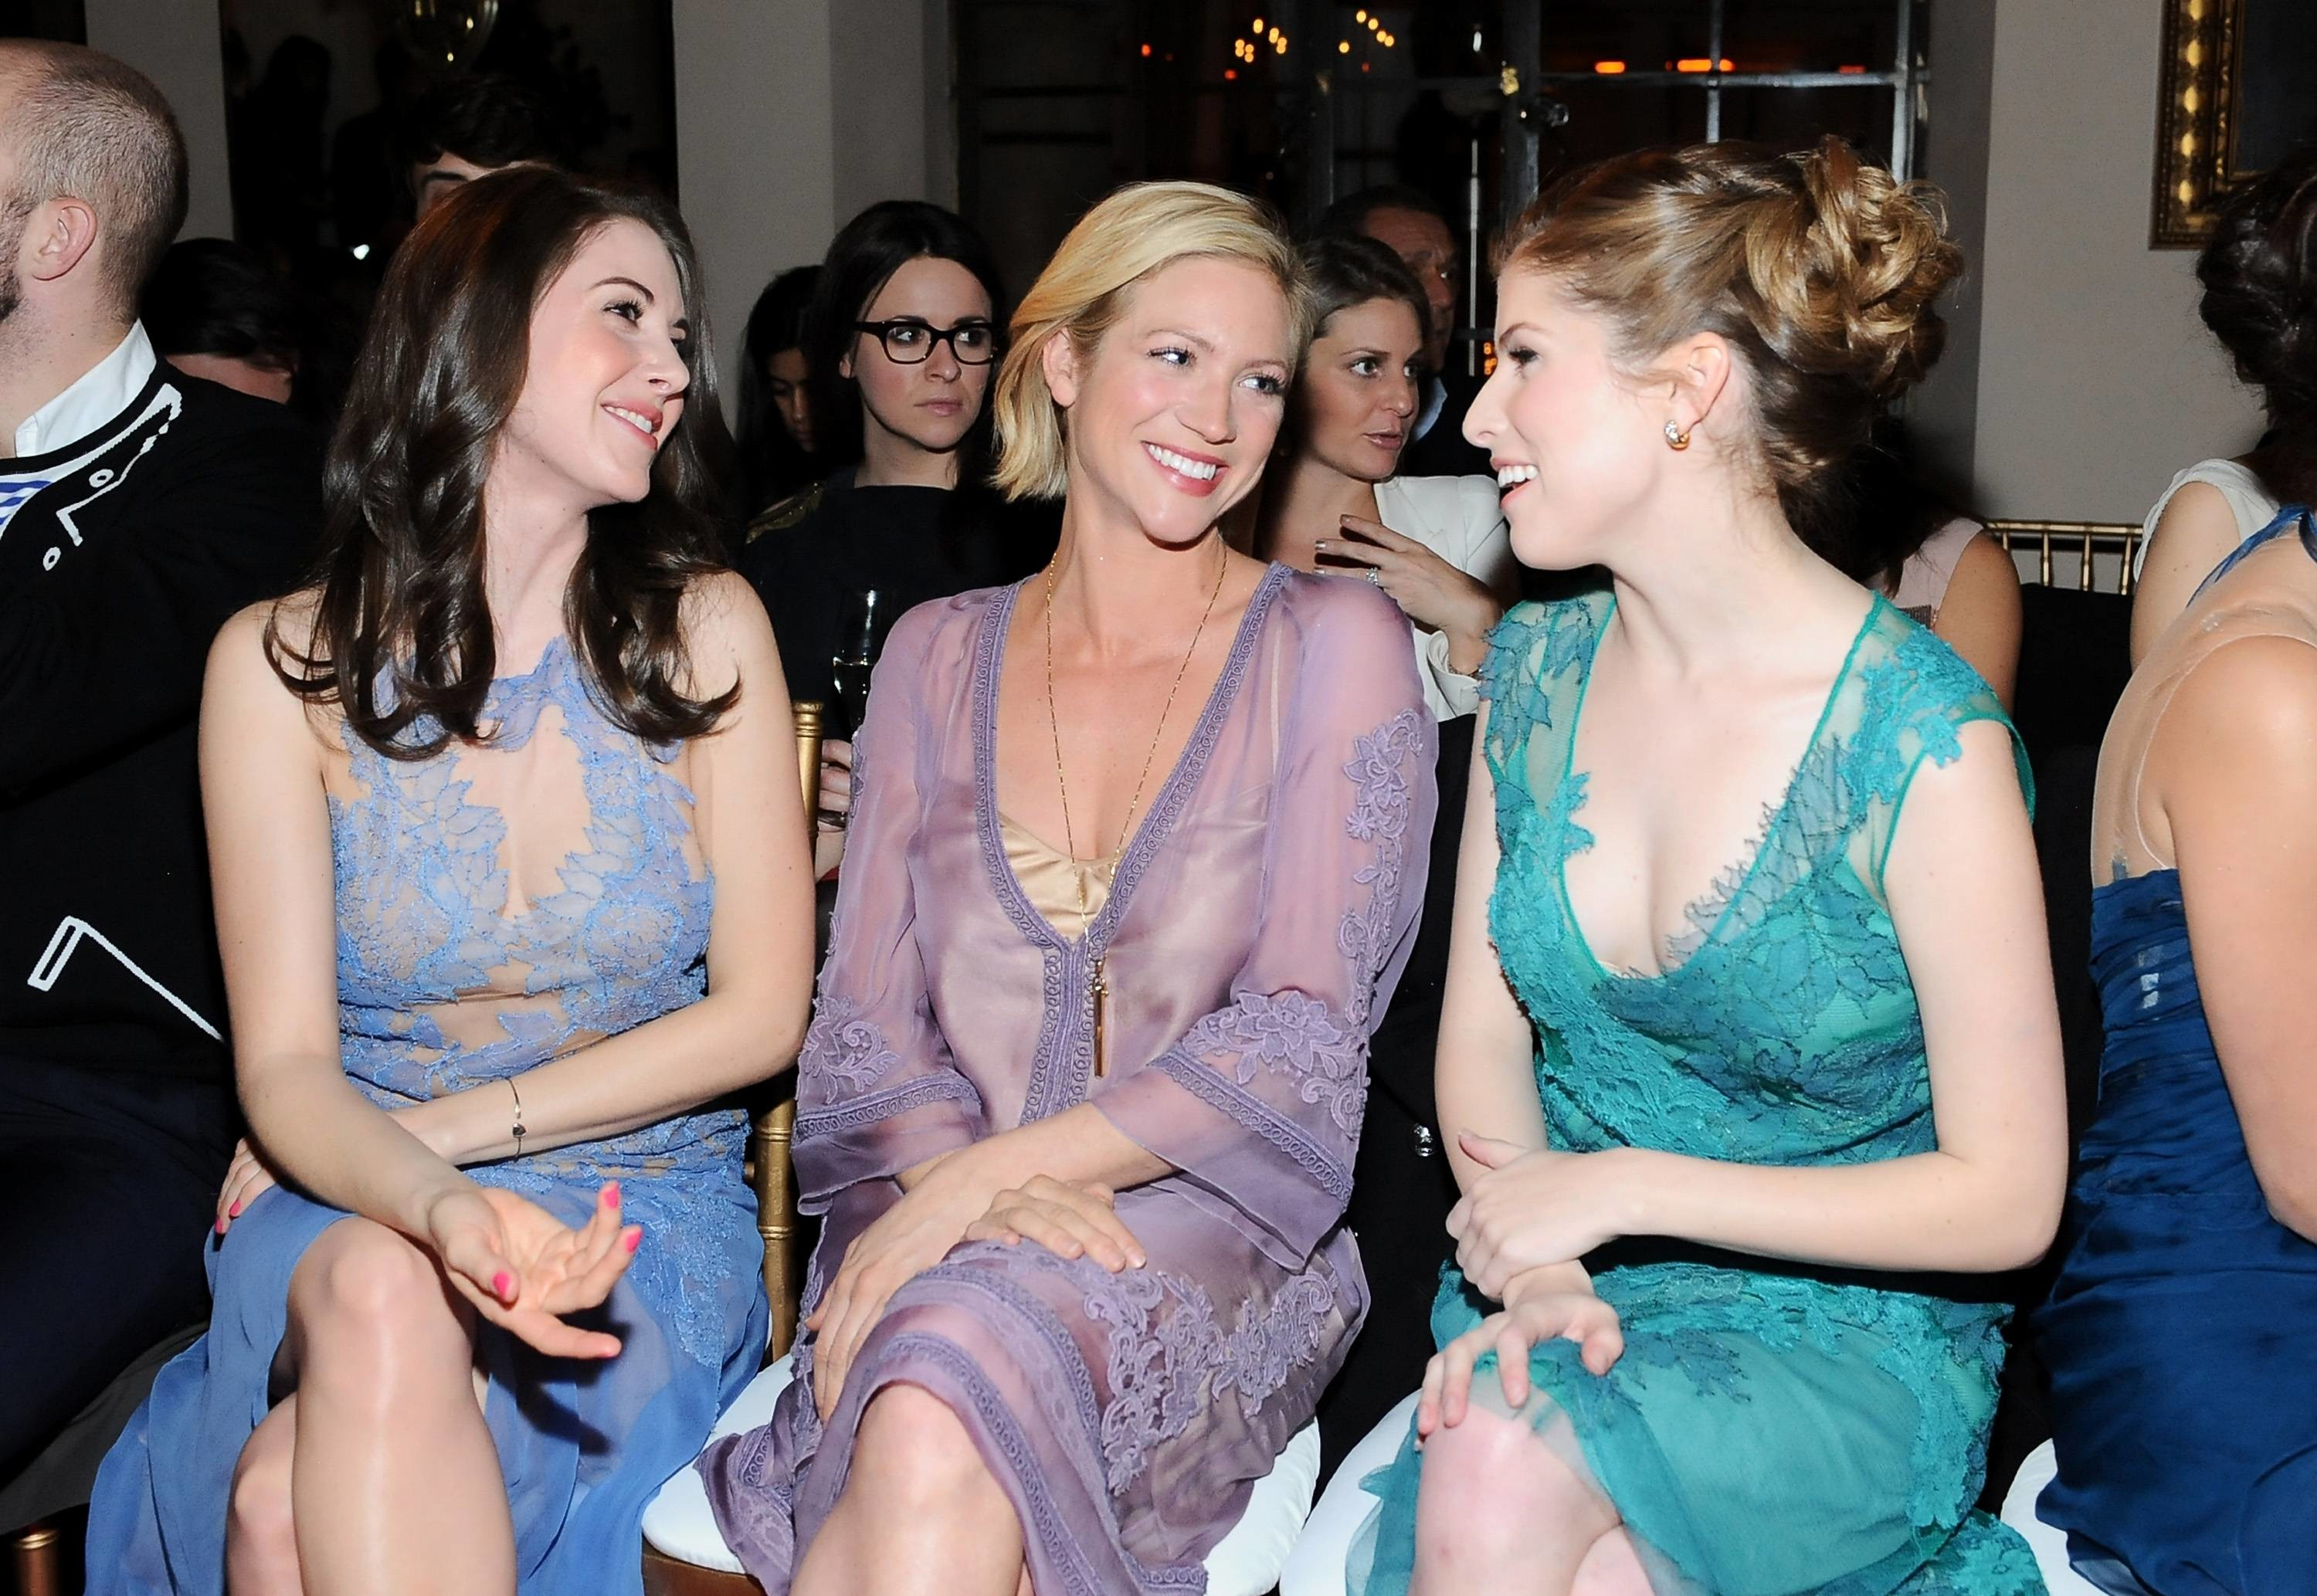 Alison Brie, Anna Kendrick, and Brittany Snow HD Wallpaper From  Gallsource.com